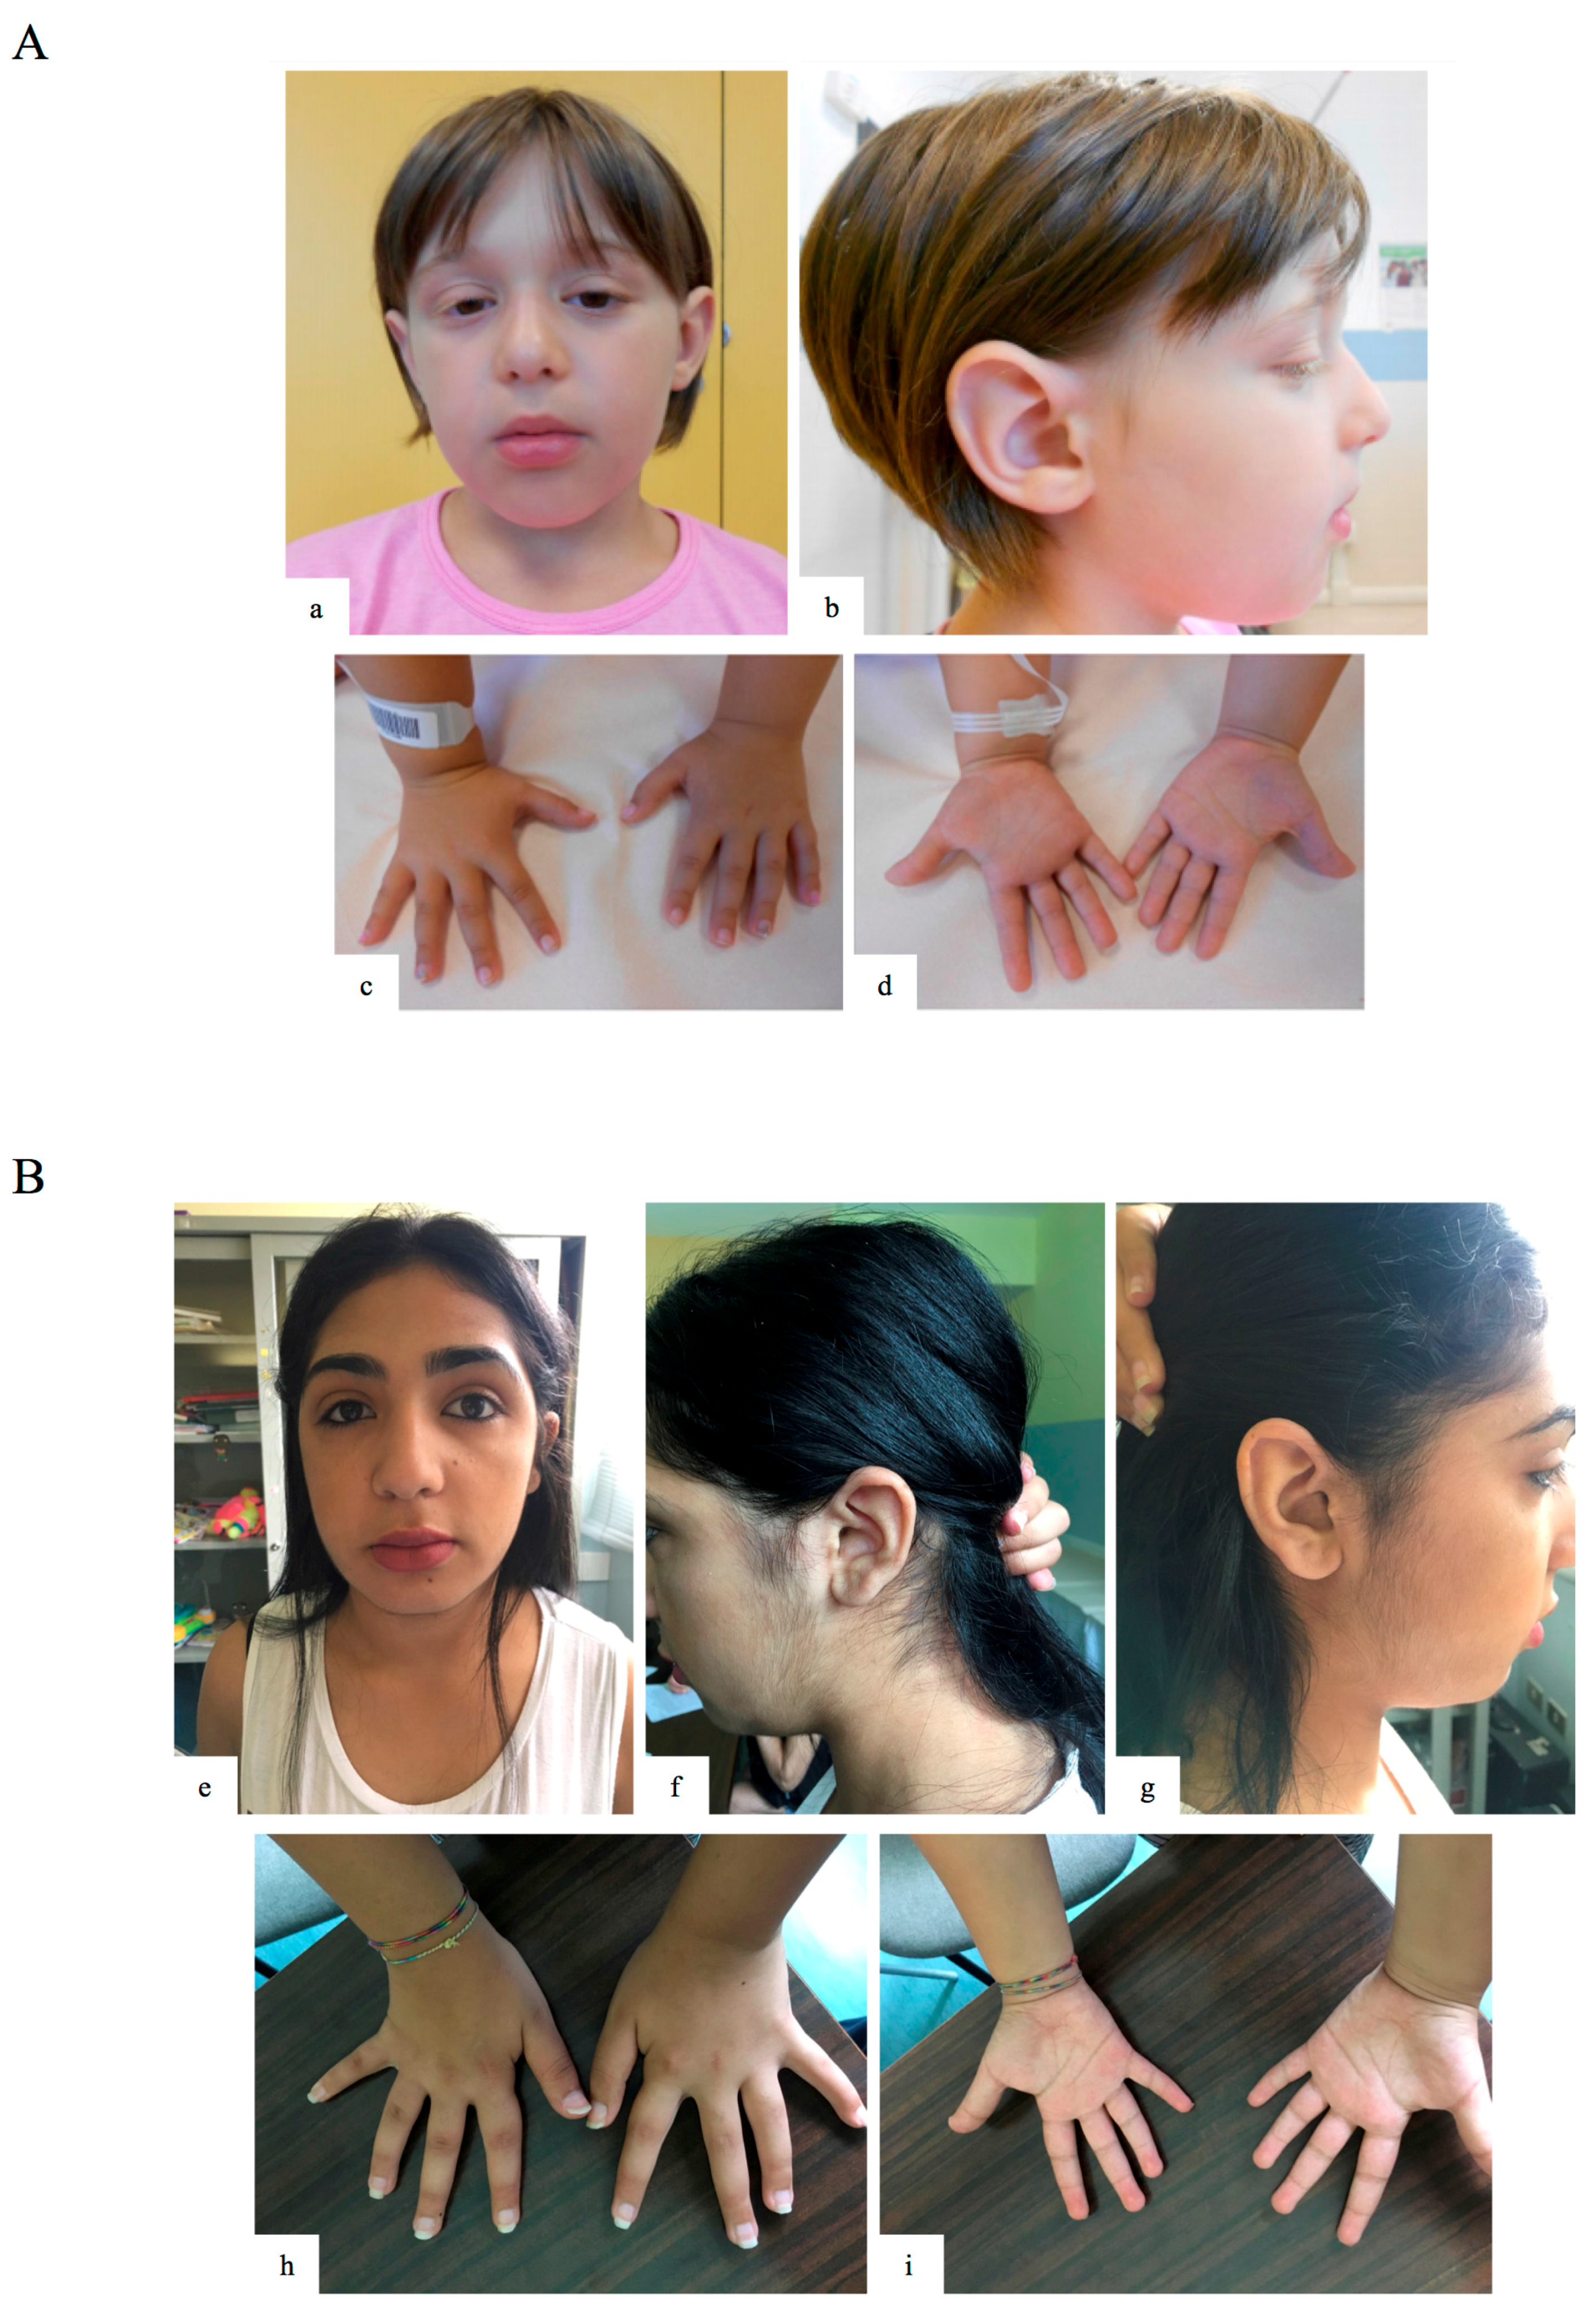 IJMS | Free Full-Text | Clinical and Neurobehavioral